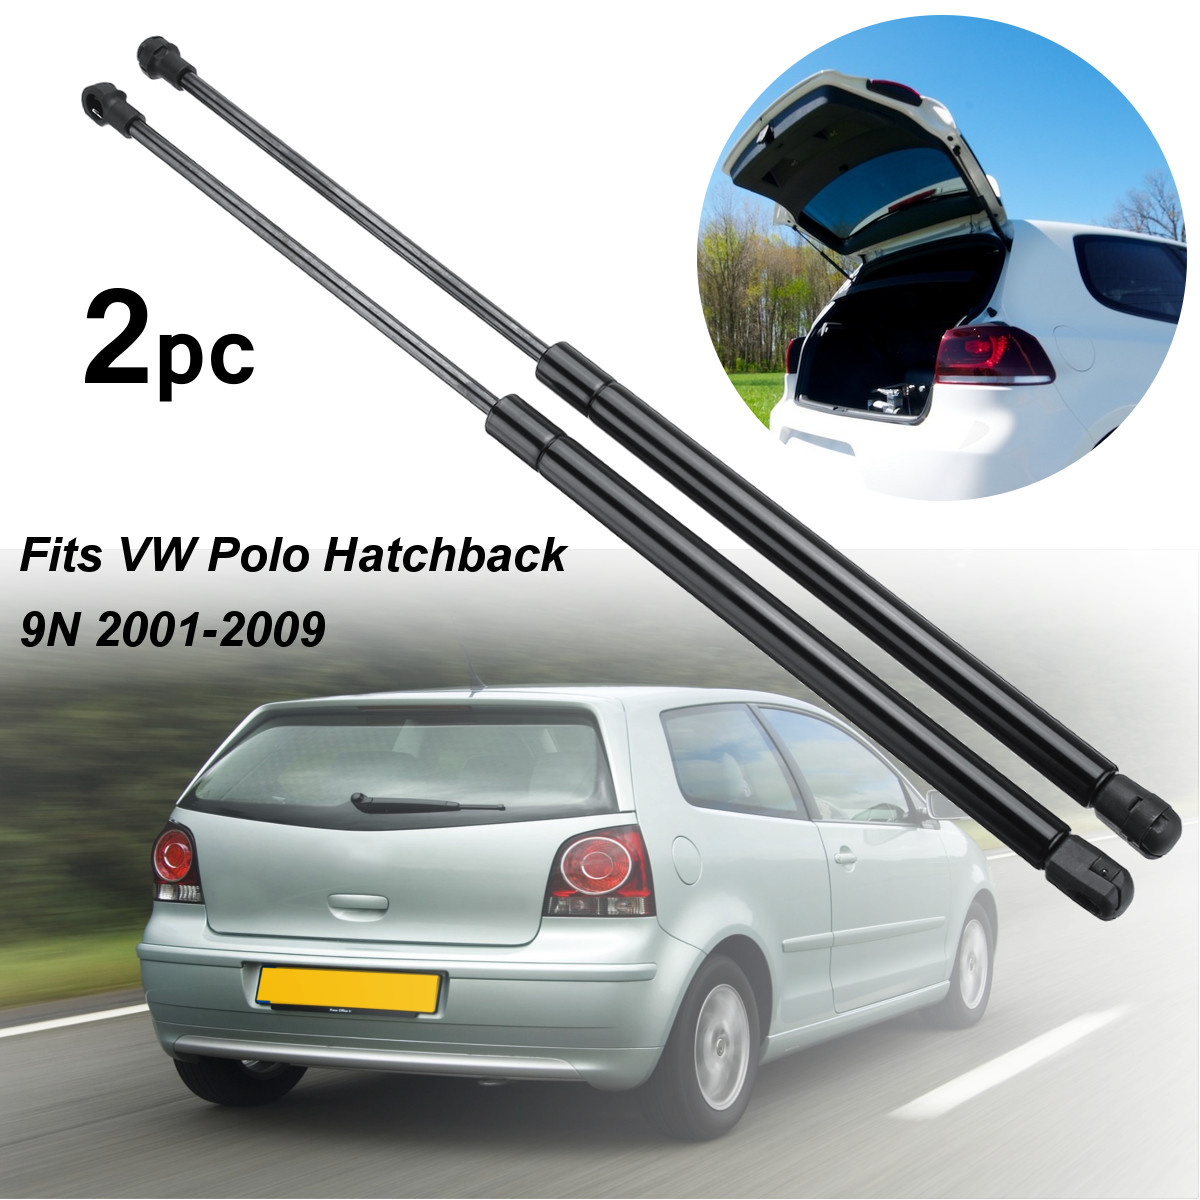 2Pcs Car Tailgate Boot Gas Struts Support Lifters For VW for Polo Hatchback 9N 2001-2009 6Q6827550C